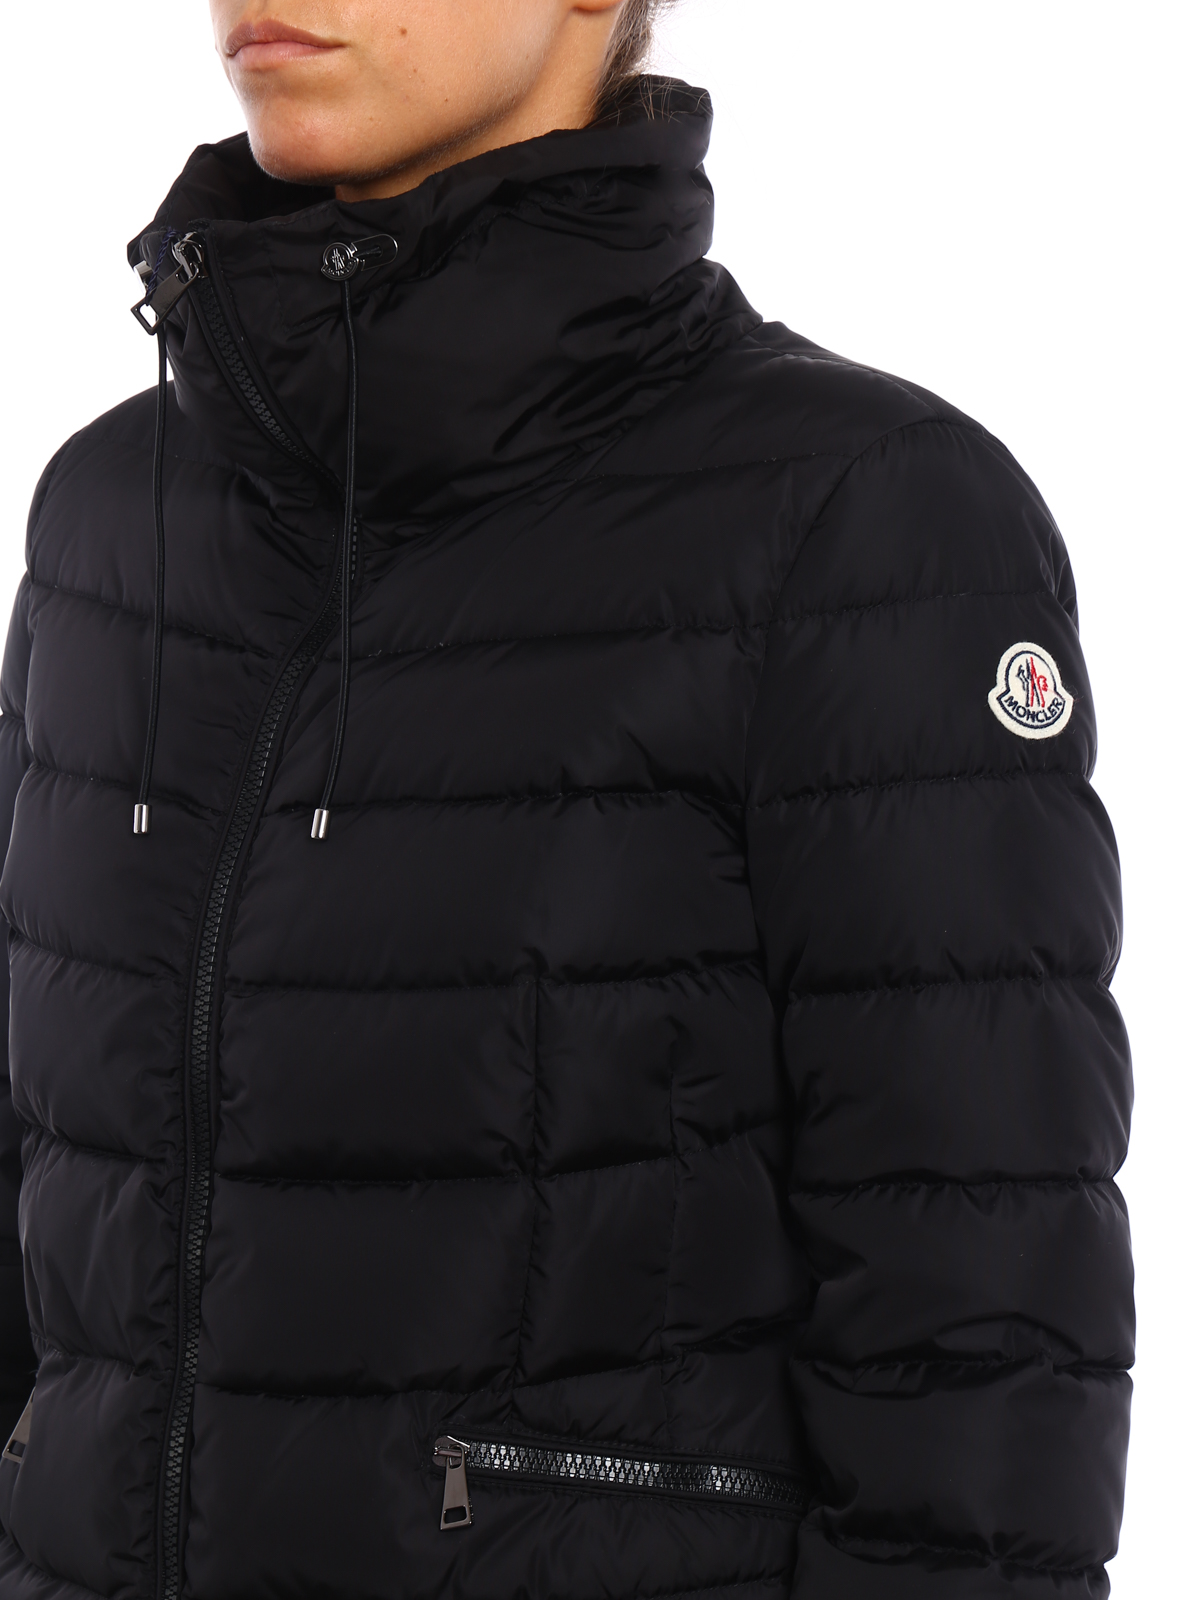 MONCLER buy online Irex fitted padded jacket